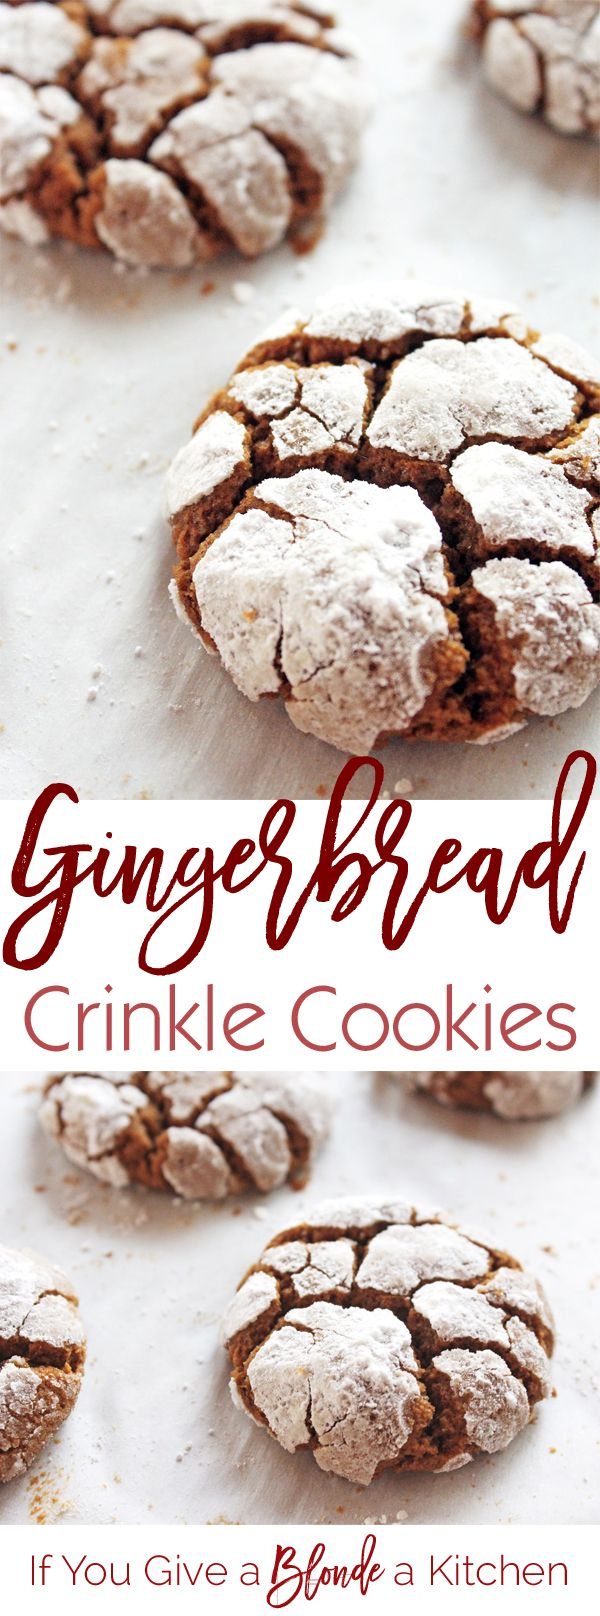 sears tennis shoes made in usa Crinkle cookies get a Christmas makeover  These cookies are made with gingerbread  Chewy  delicious and coated with confectioners  39  sugar  these Gingerbread Crinkle Cookies are the best